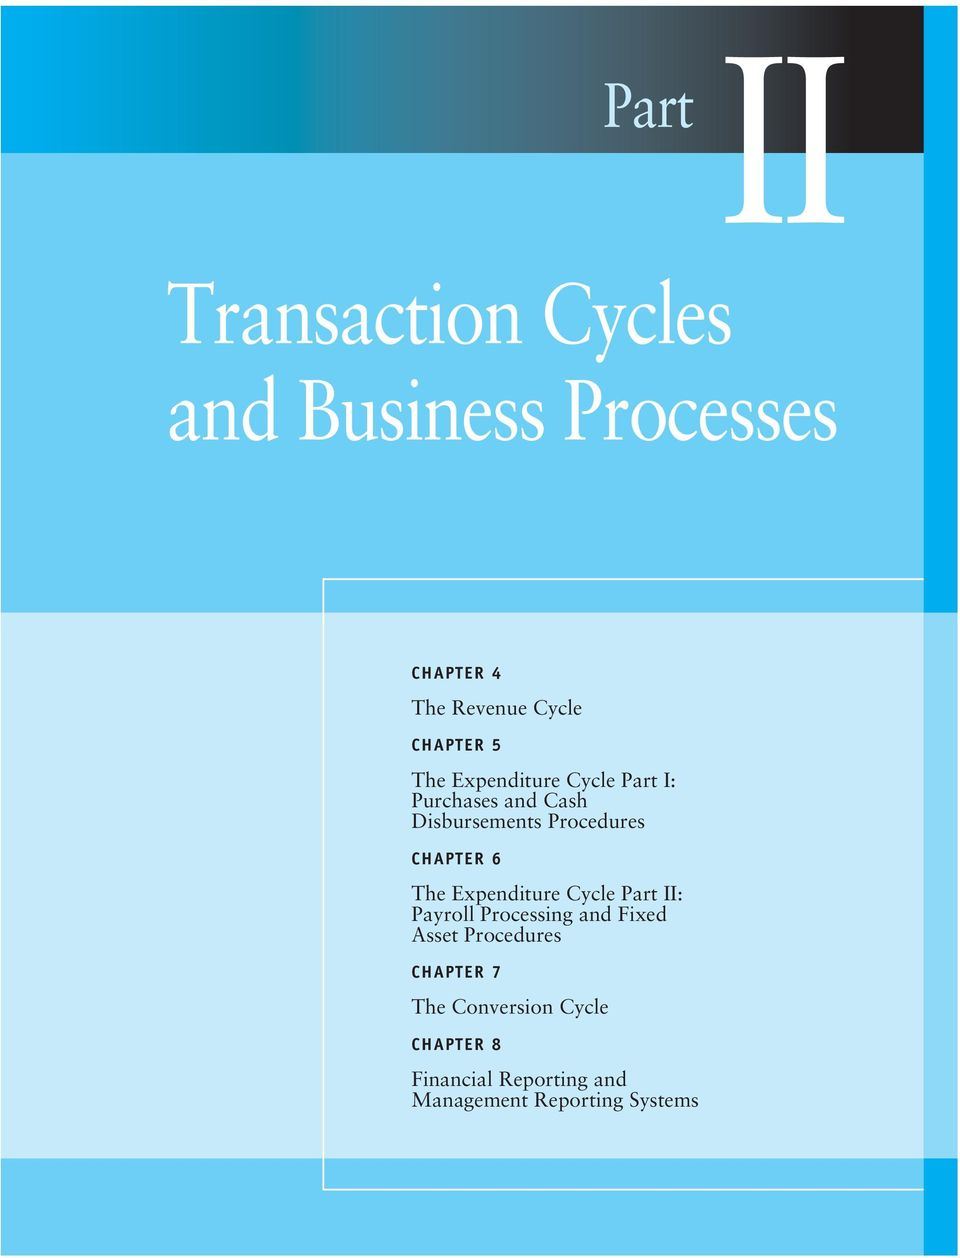 The Expenditure Cycle Part II: Payroll Processing and Fixed Asset Procedures CHAPTER